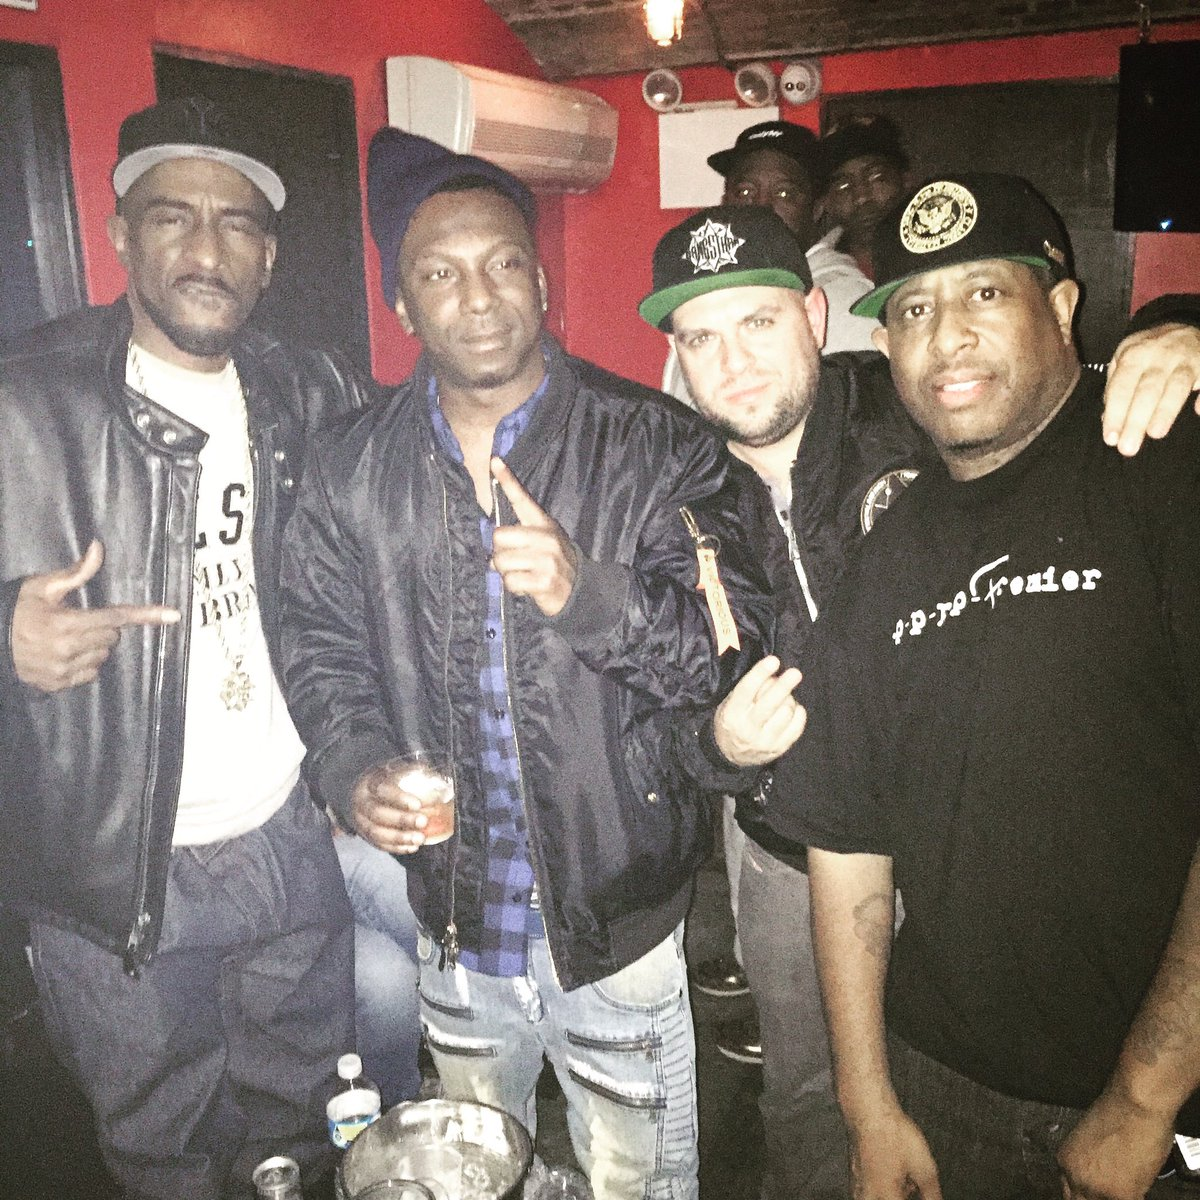 Myself, the GOD #rakim, the GOAT @REALDJPREMIER and the legend @RasKass https://t.co/MHLoKm5zMP